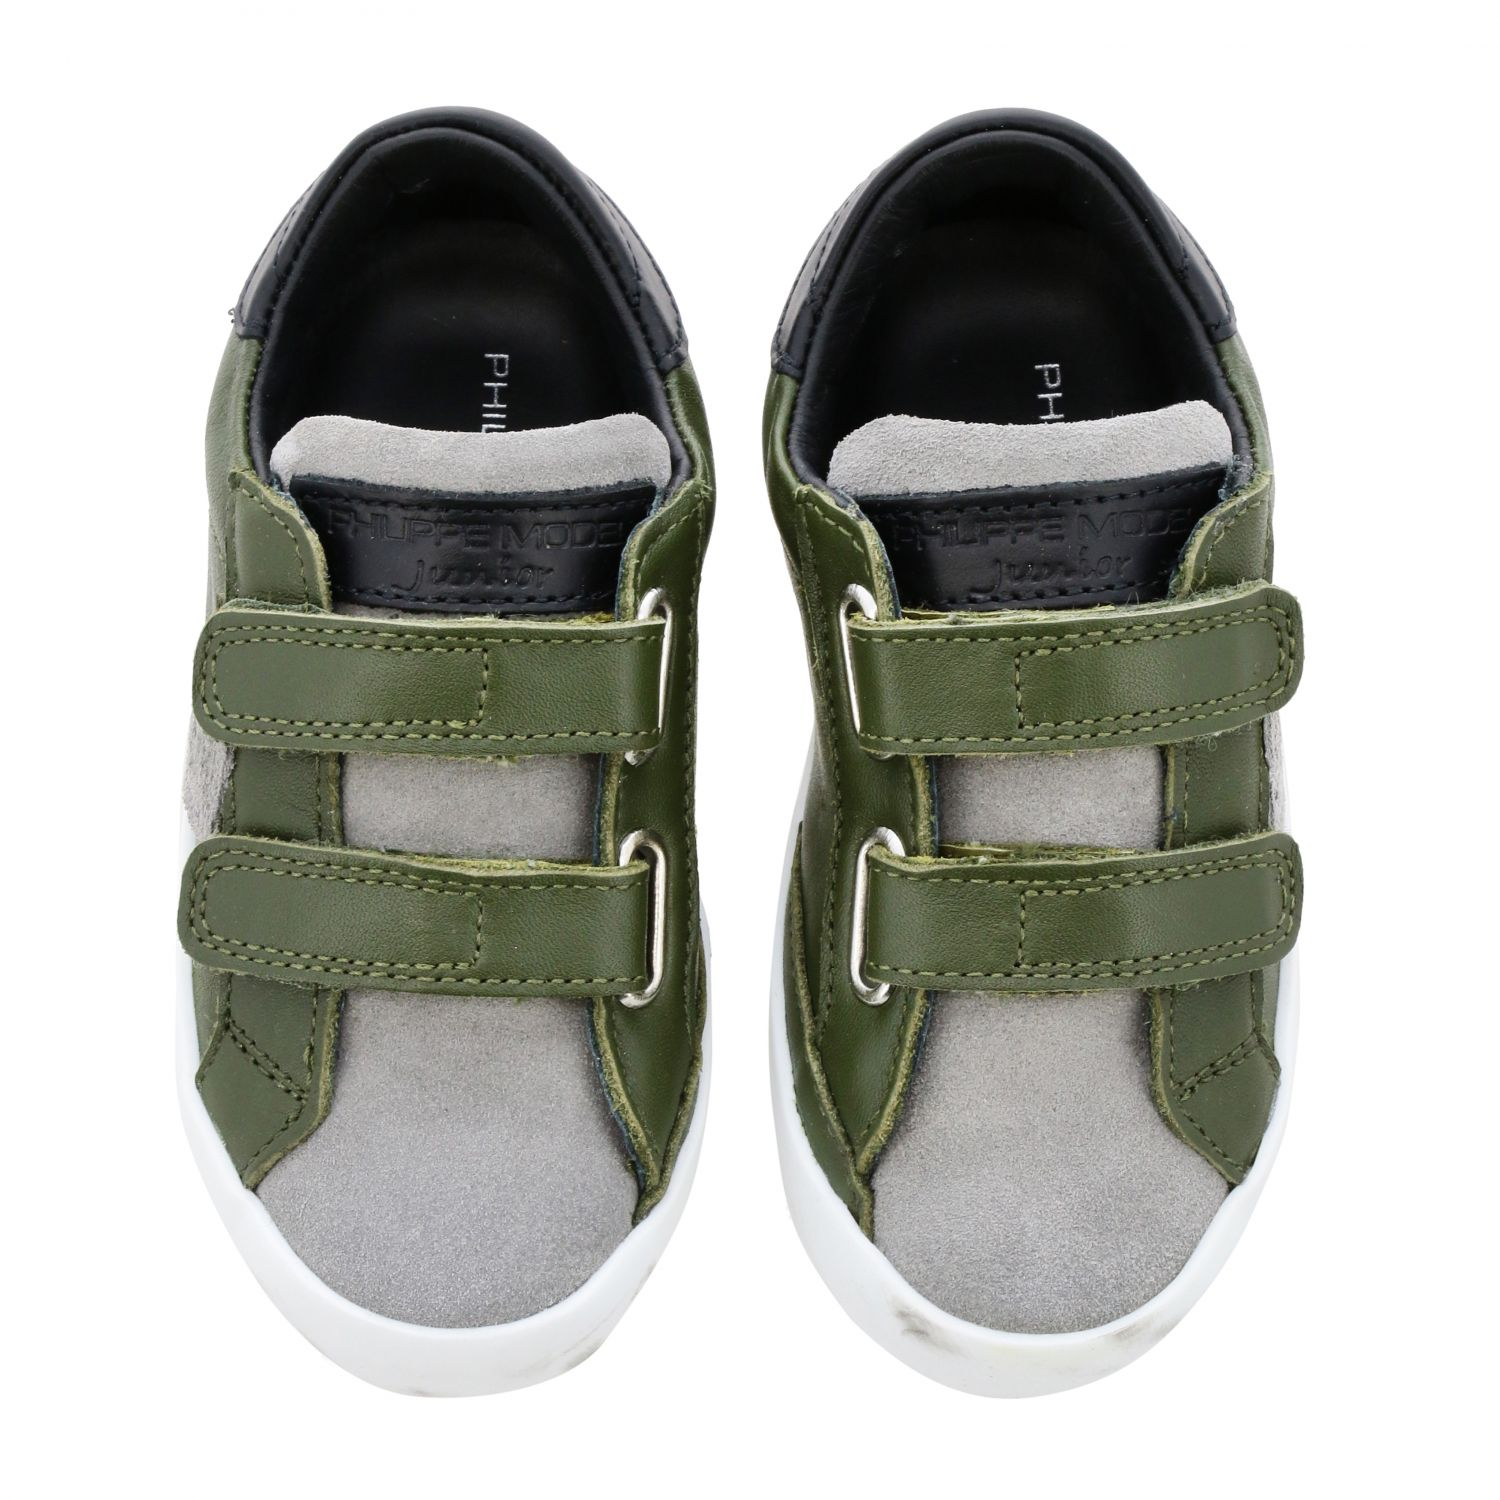 Shoes kids Philippe Model green 3